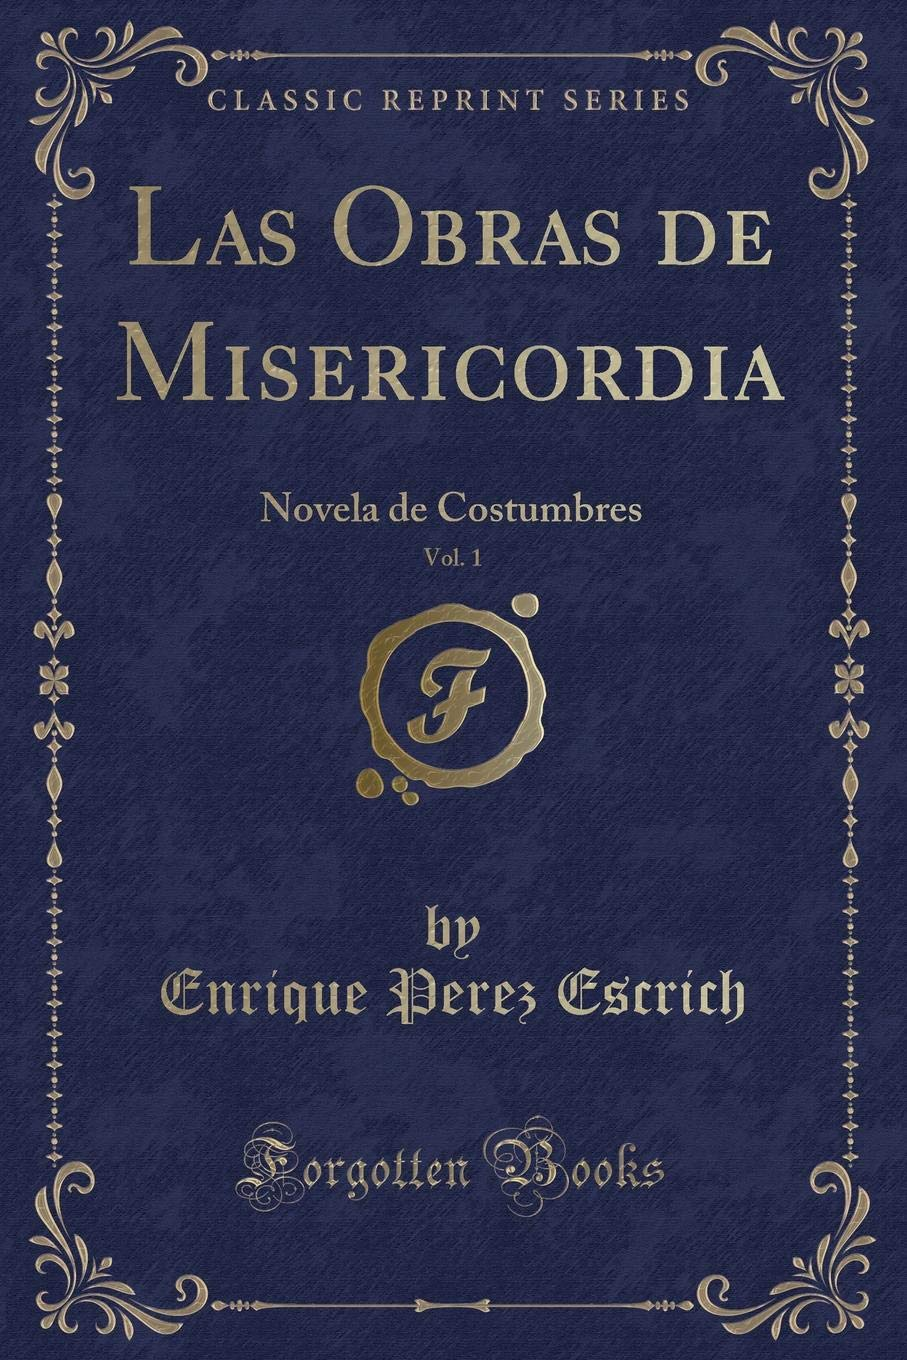 Las Obras de Misericordia, Vol. 1: Novela de Costumbres (Classic Reprint) (Spanish Edition) (Spanish) Paperback – October 4, 2018